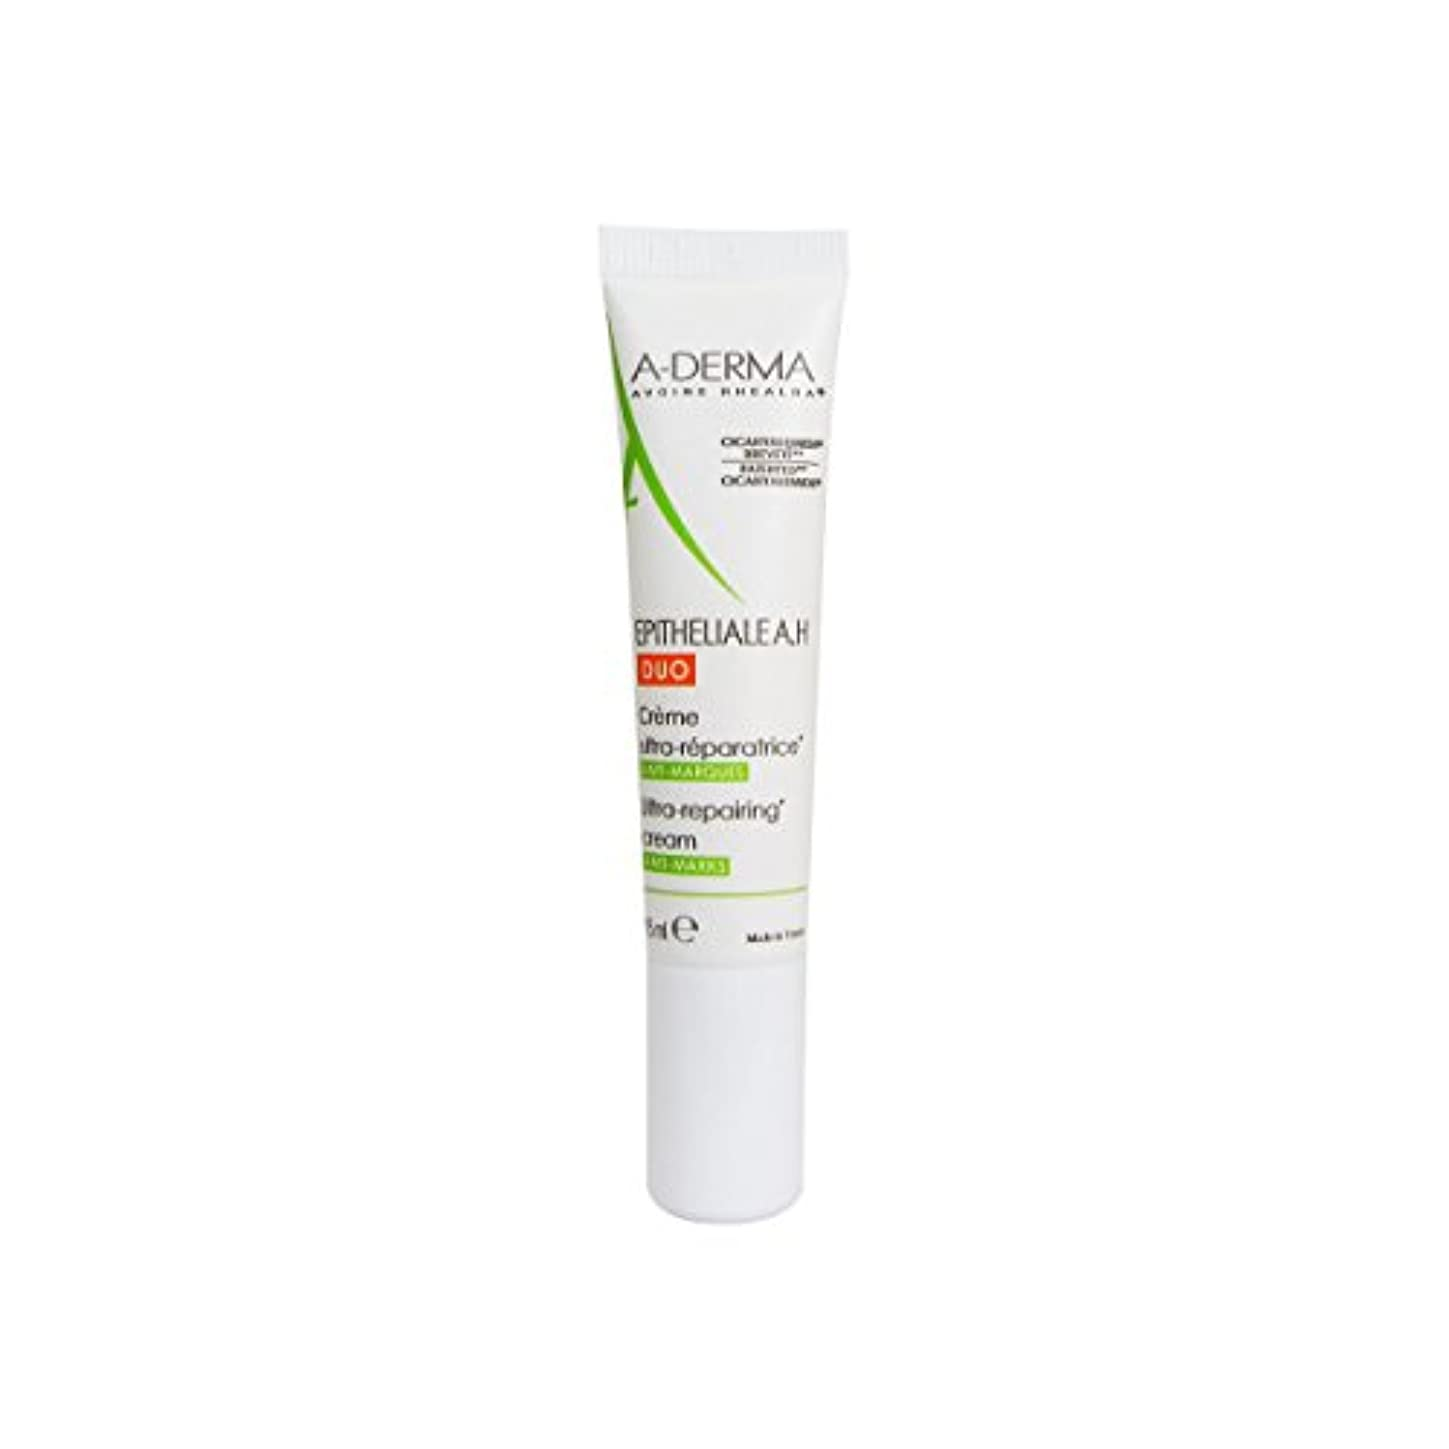 質量弱い器用A-derma Epitheliale Ah Duo Repair Cream 15ml [並行輸入品]